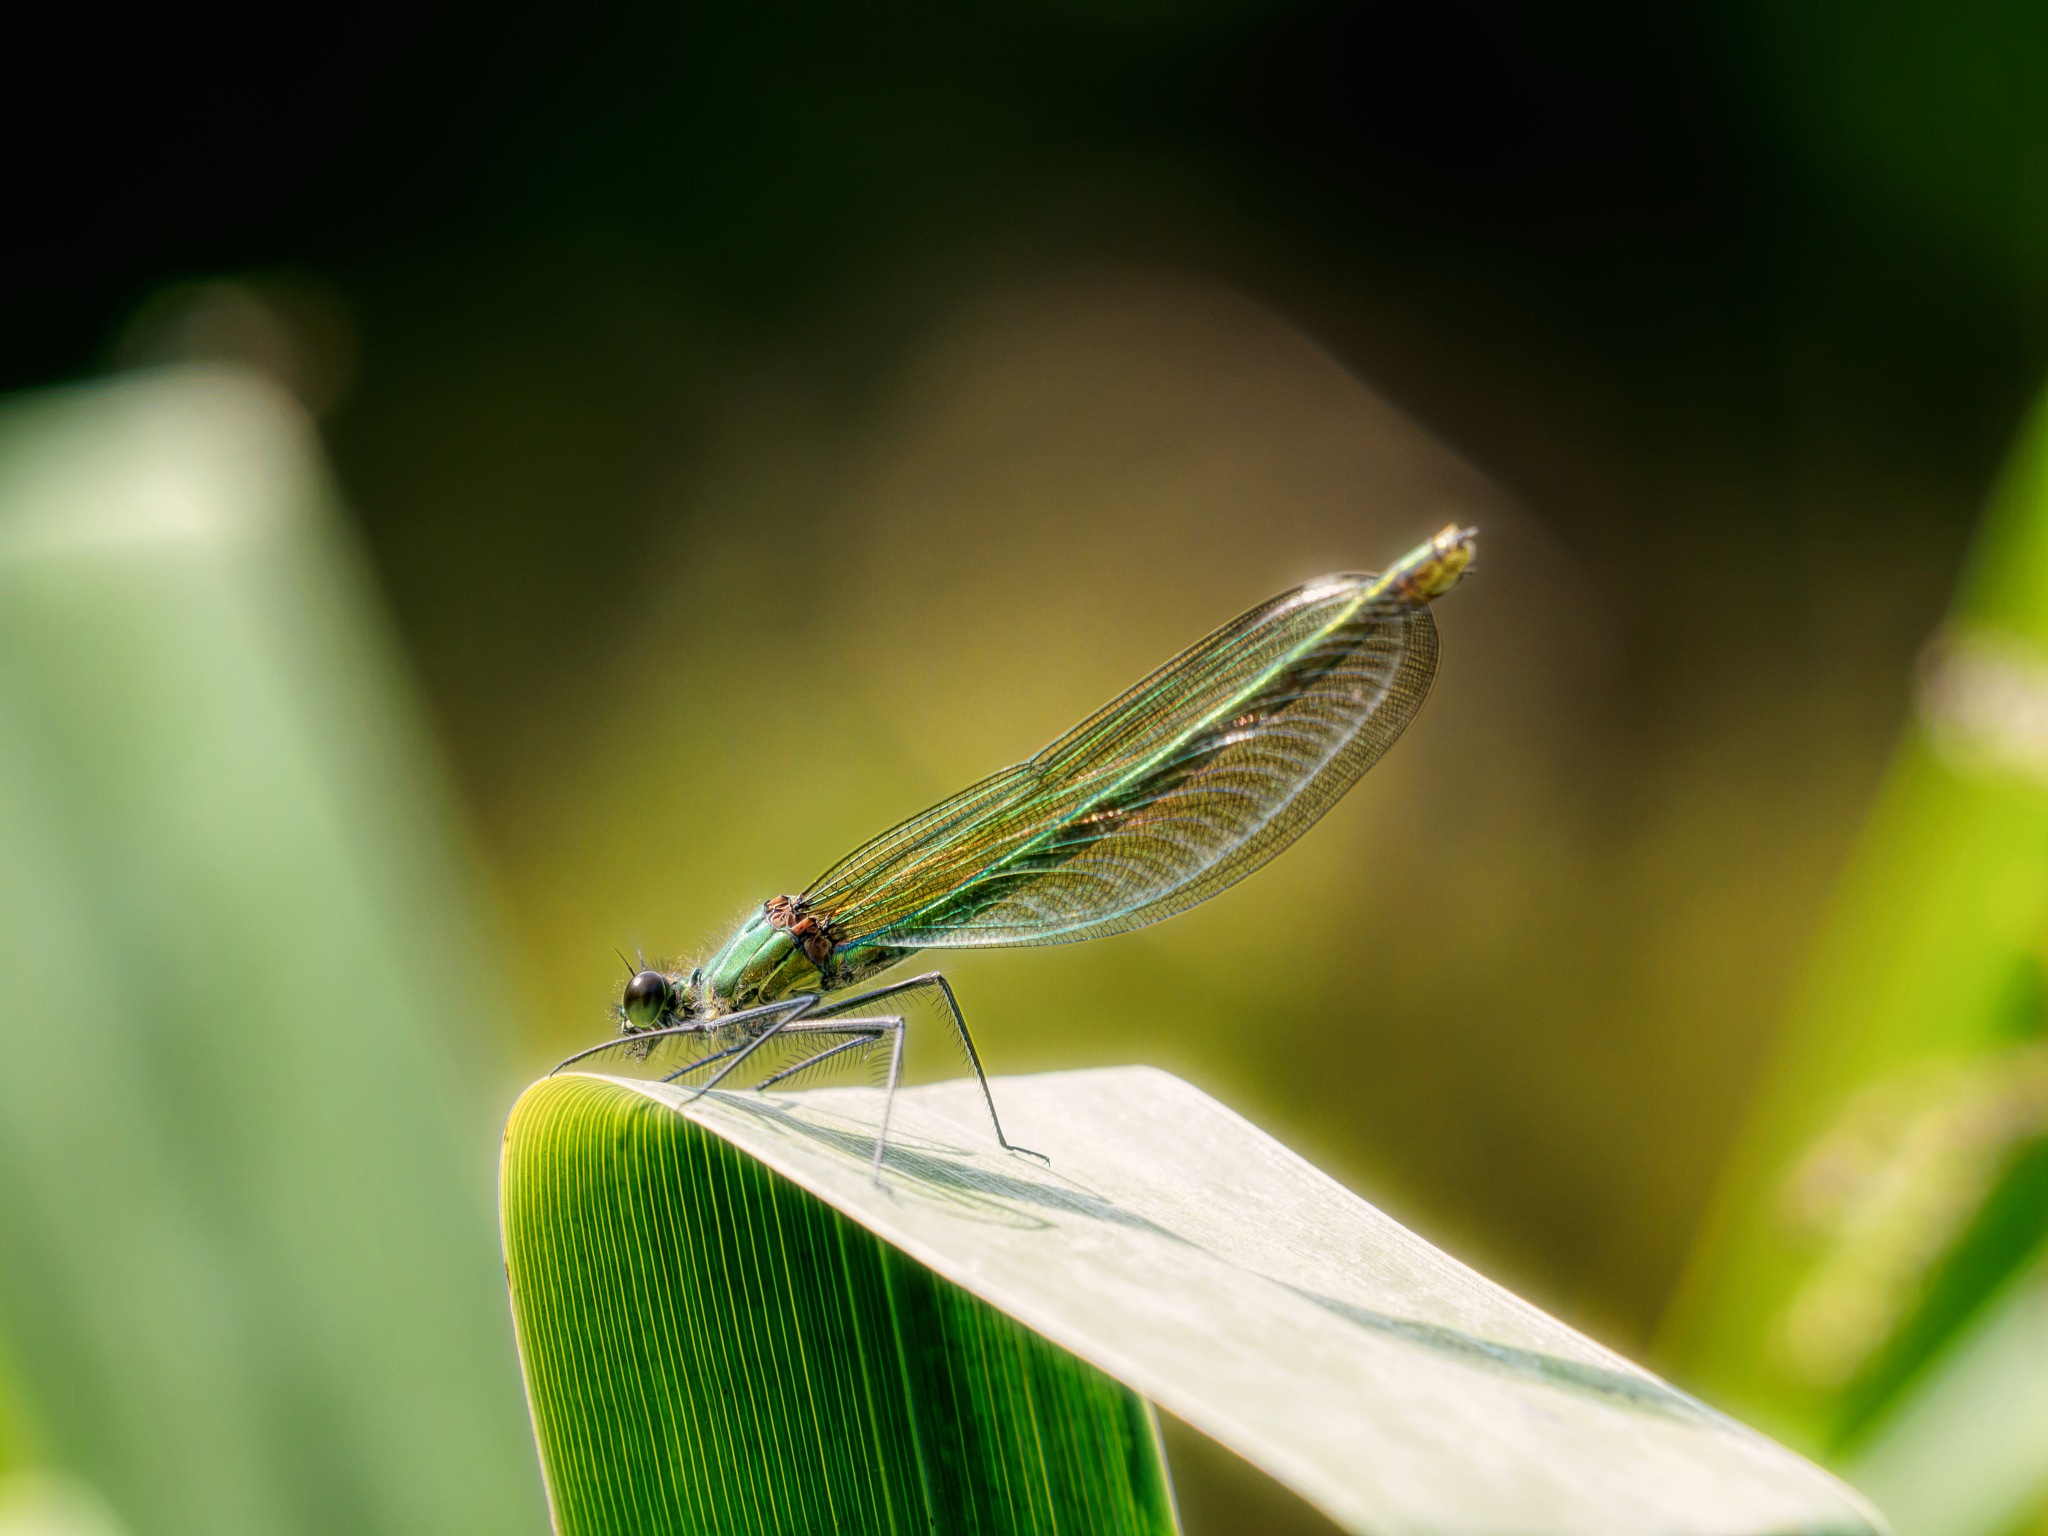 Female Banded Demoiselle by Sarah Walters